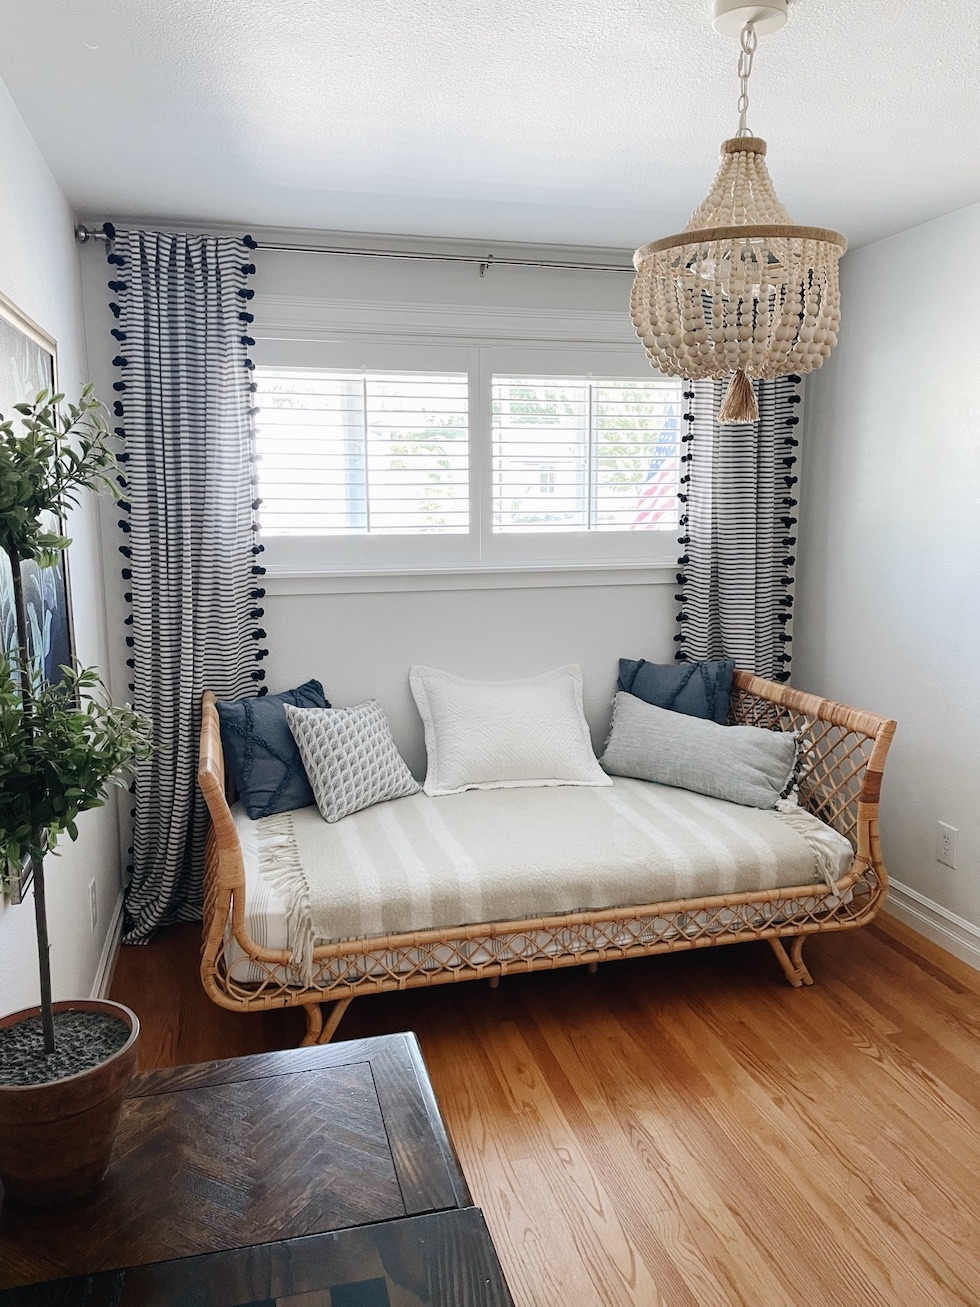 Rattan Daybed in Our Guest Room